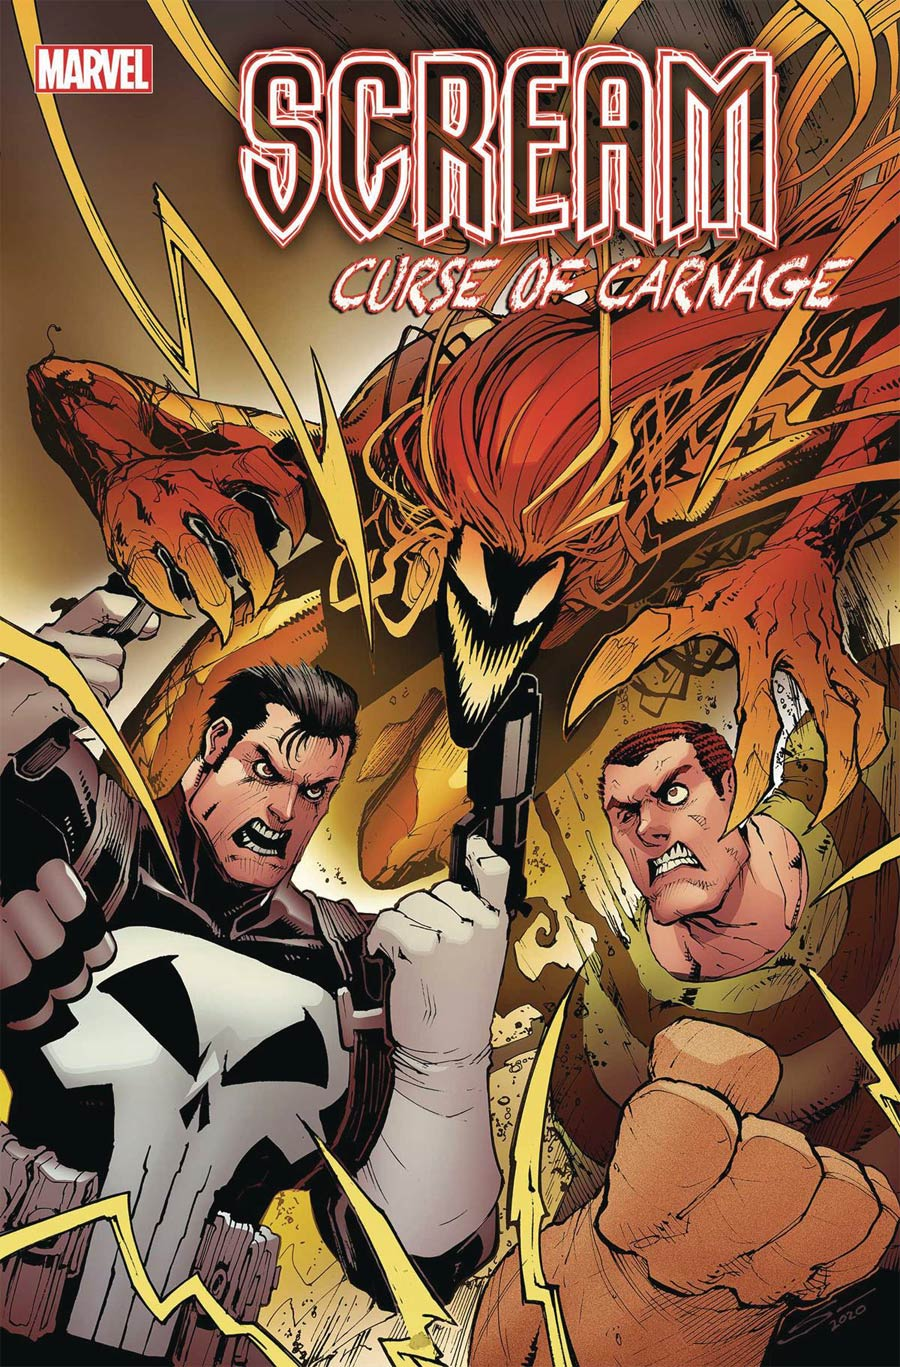 Scream: Curse of Carnage